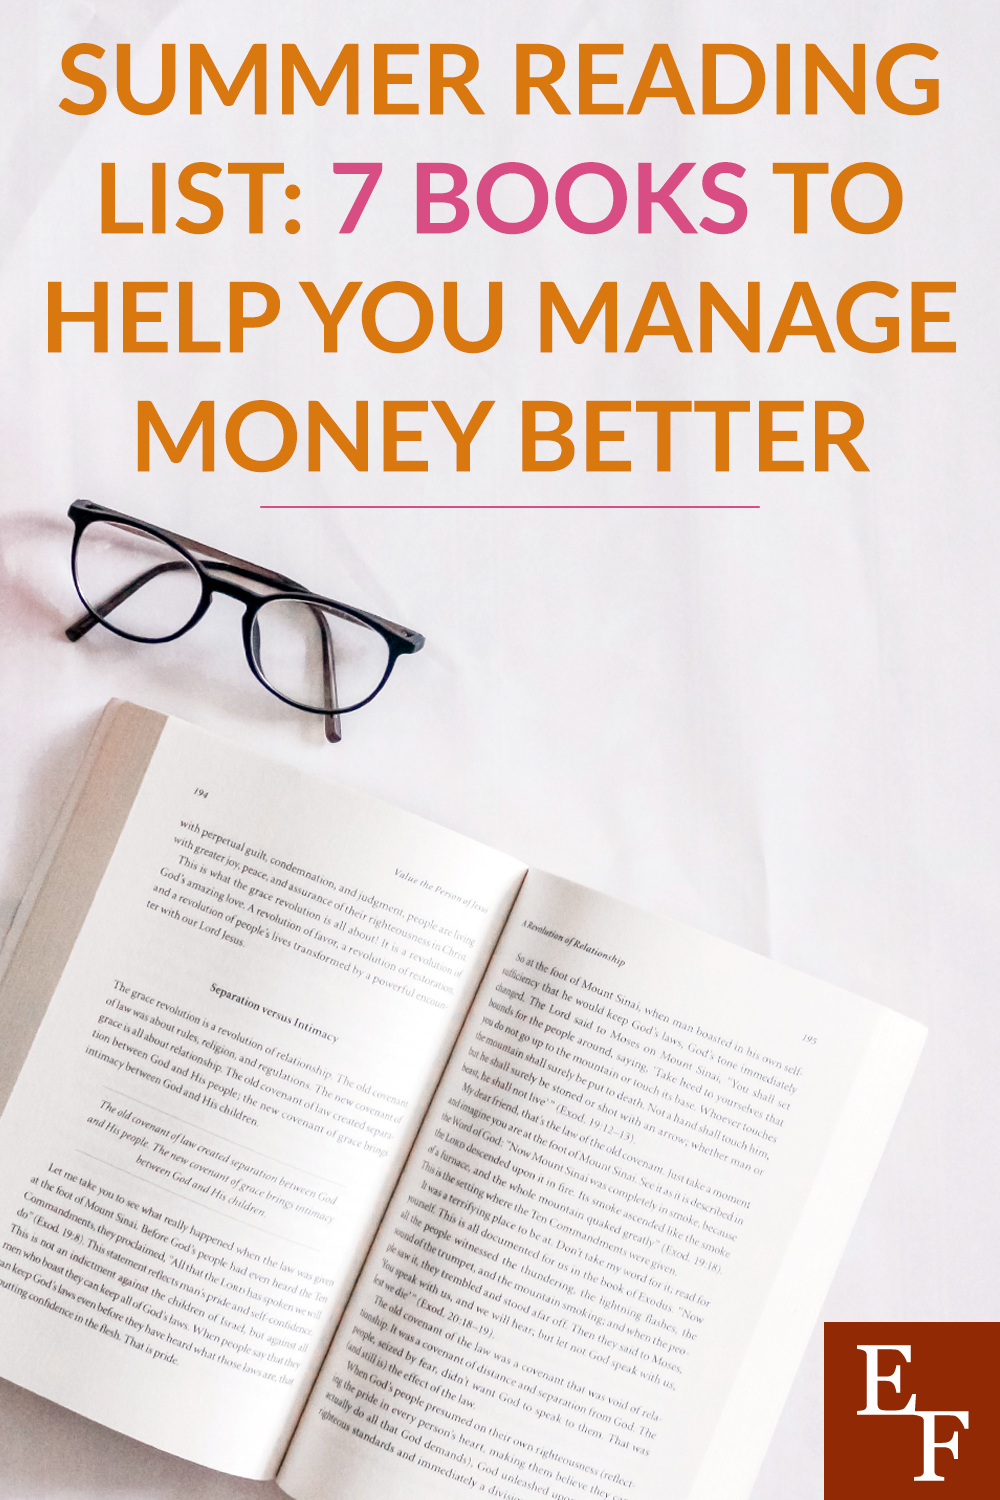 Summer is the perfect time to catch up on reading. There are many books to help you manage money better. Use your free time to get started.